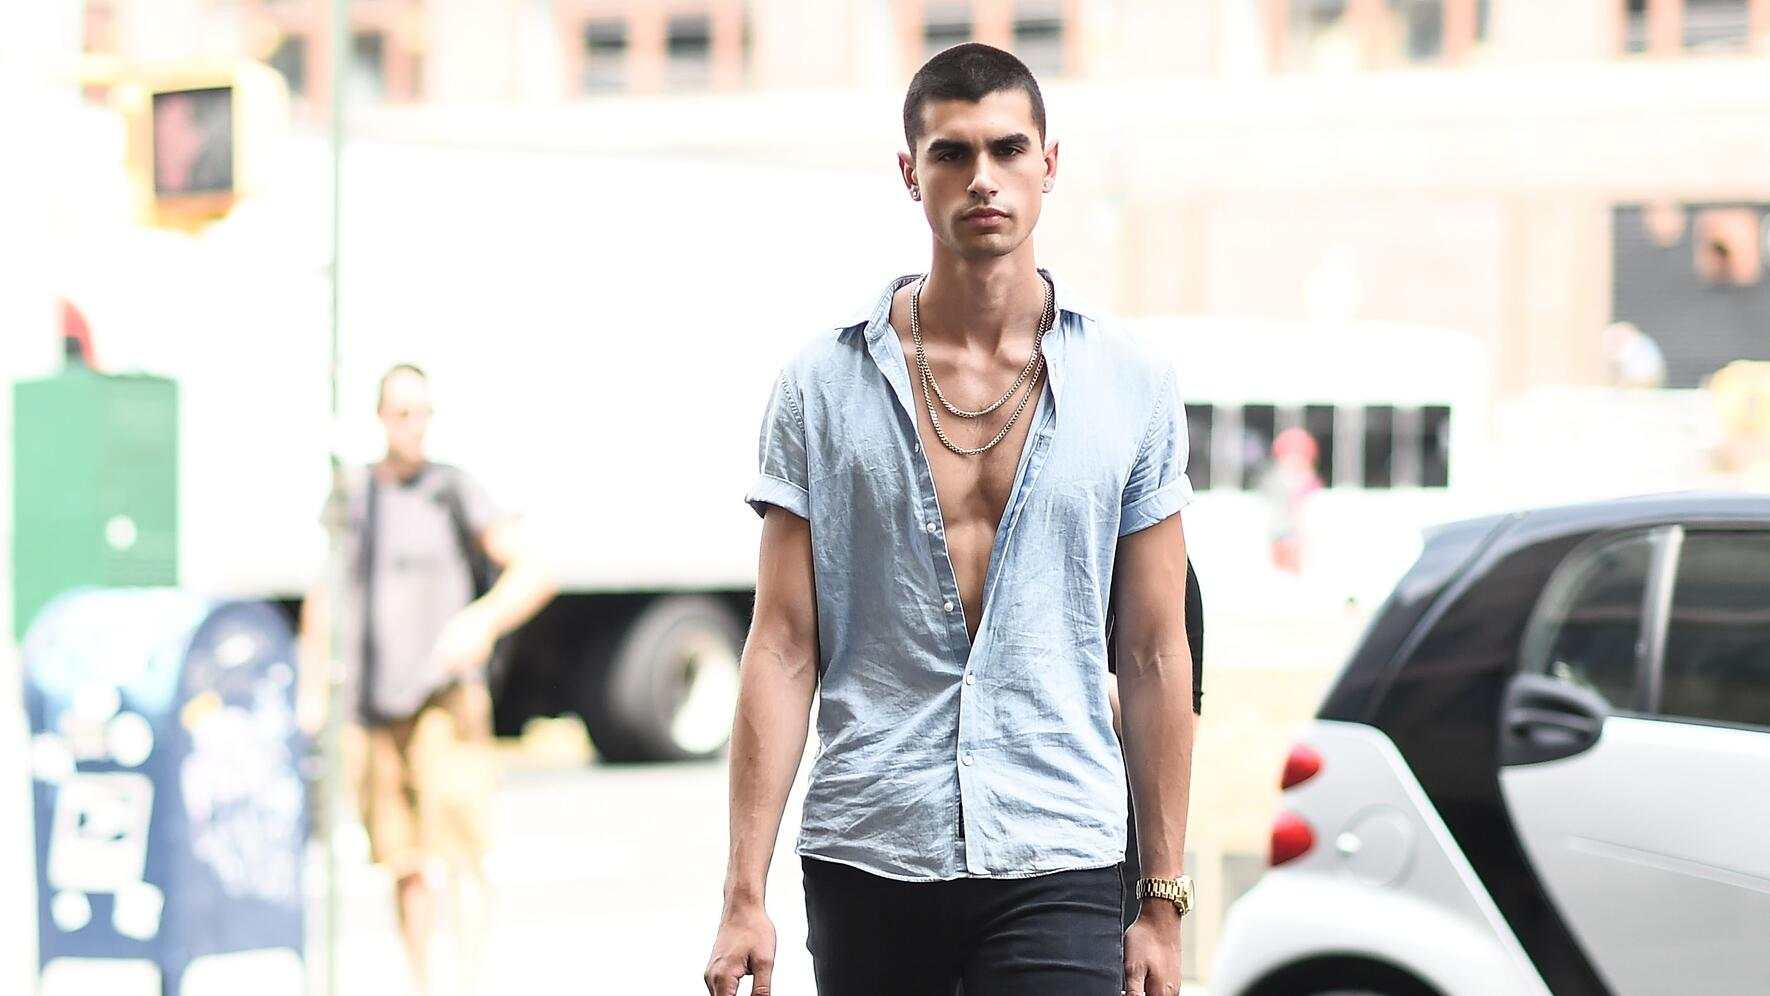 NEW YORK, NY - JULY 12:  A model is seen outside the Parke & Ronen show during New York Fashion Week: Men's S/S 2018 at Skylight Clarkson Sq on July 12, 2017 in New York City.  (Photo by Daniel Zuchnik/Getty Images)